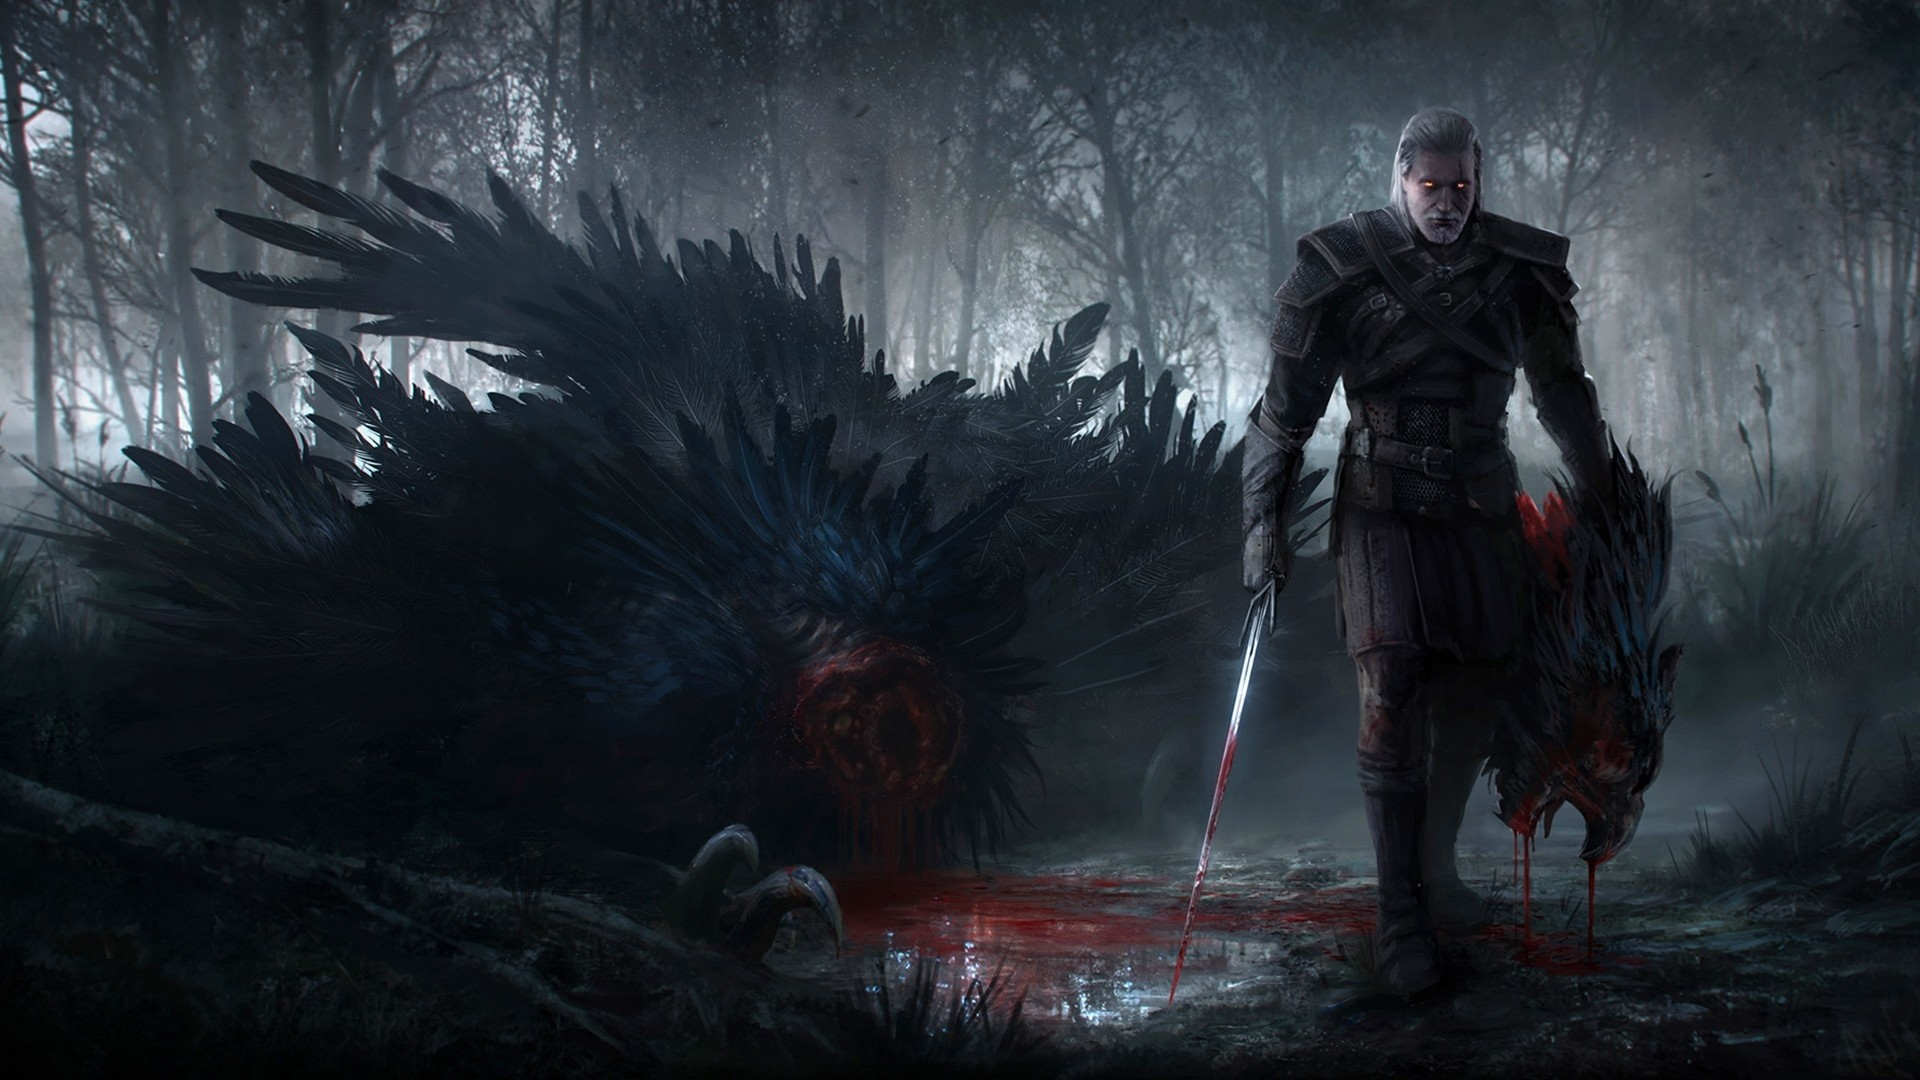 1920x1080 View, download, comment, and rate this  The Witcher 3: Wild Hunt